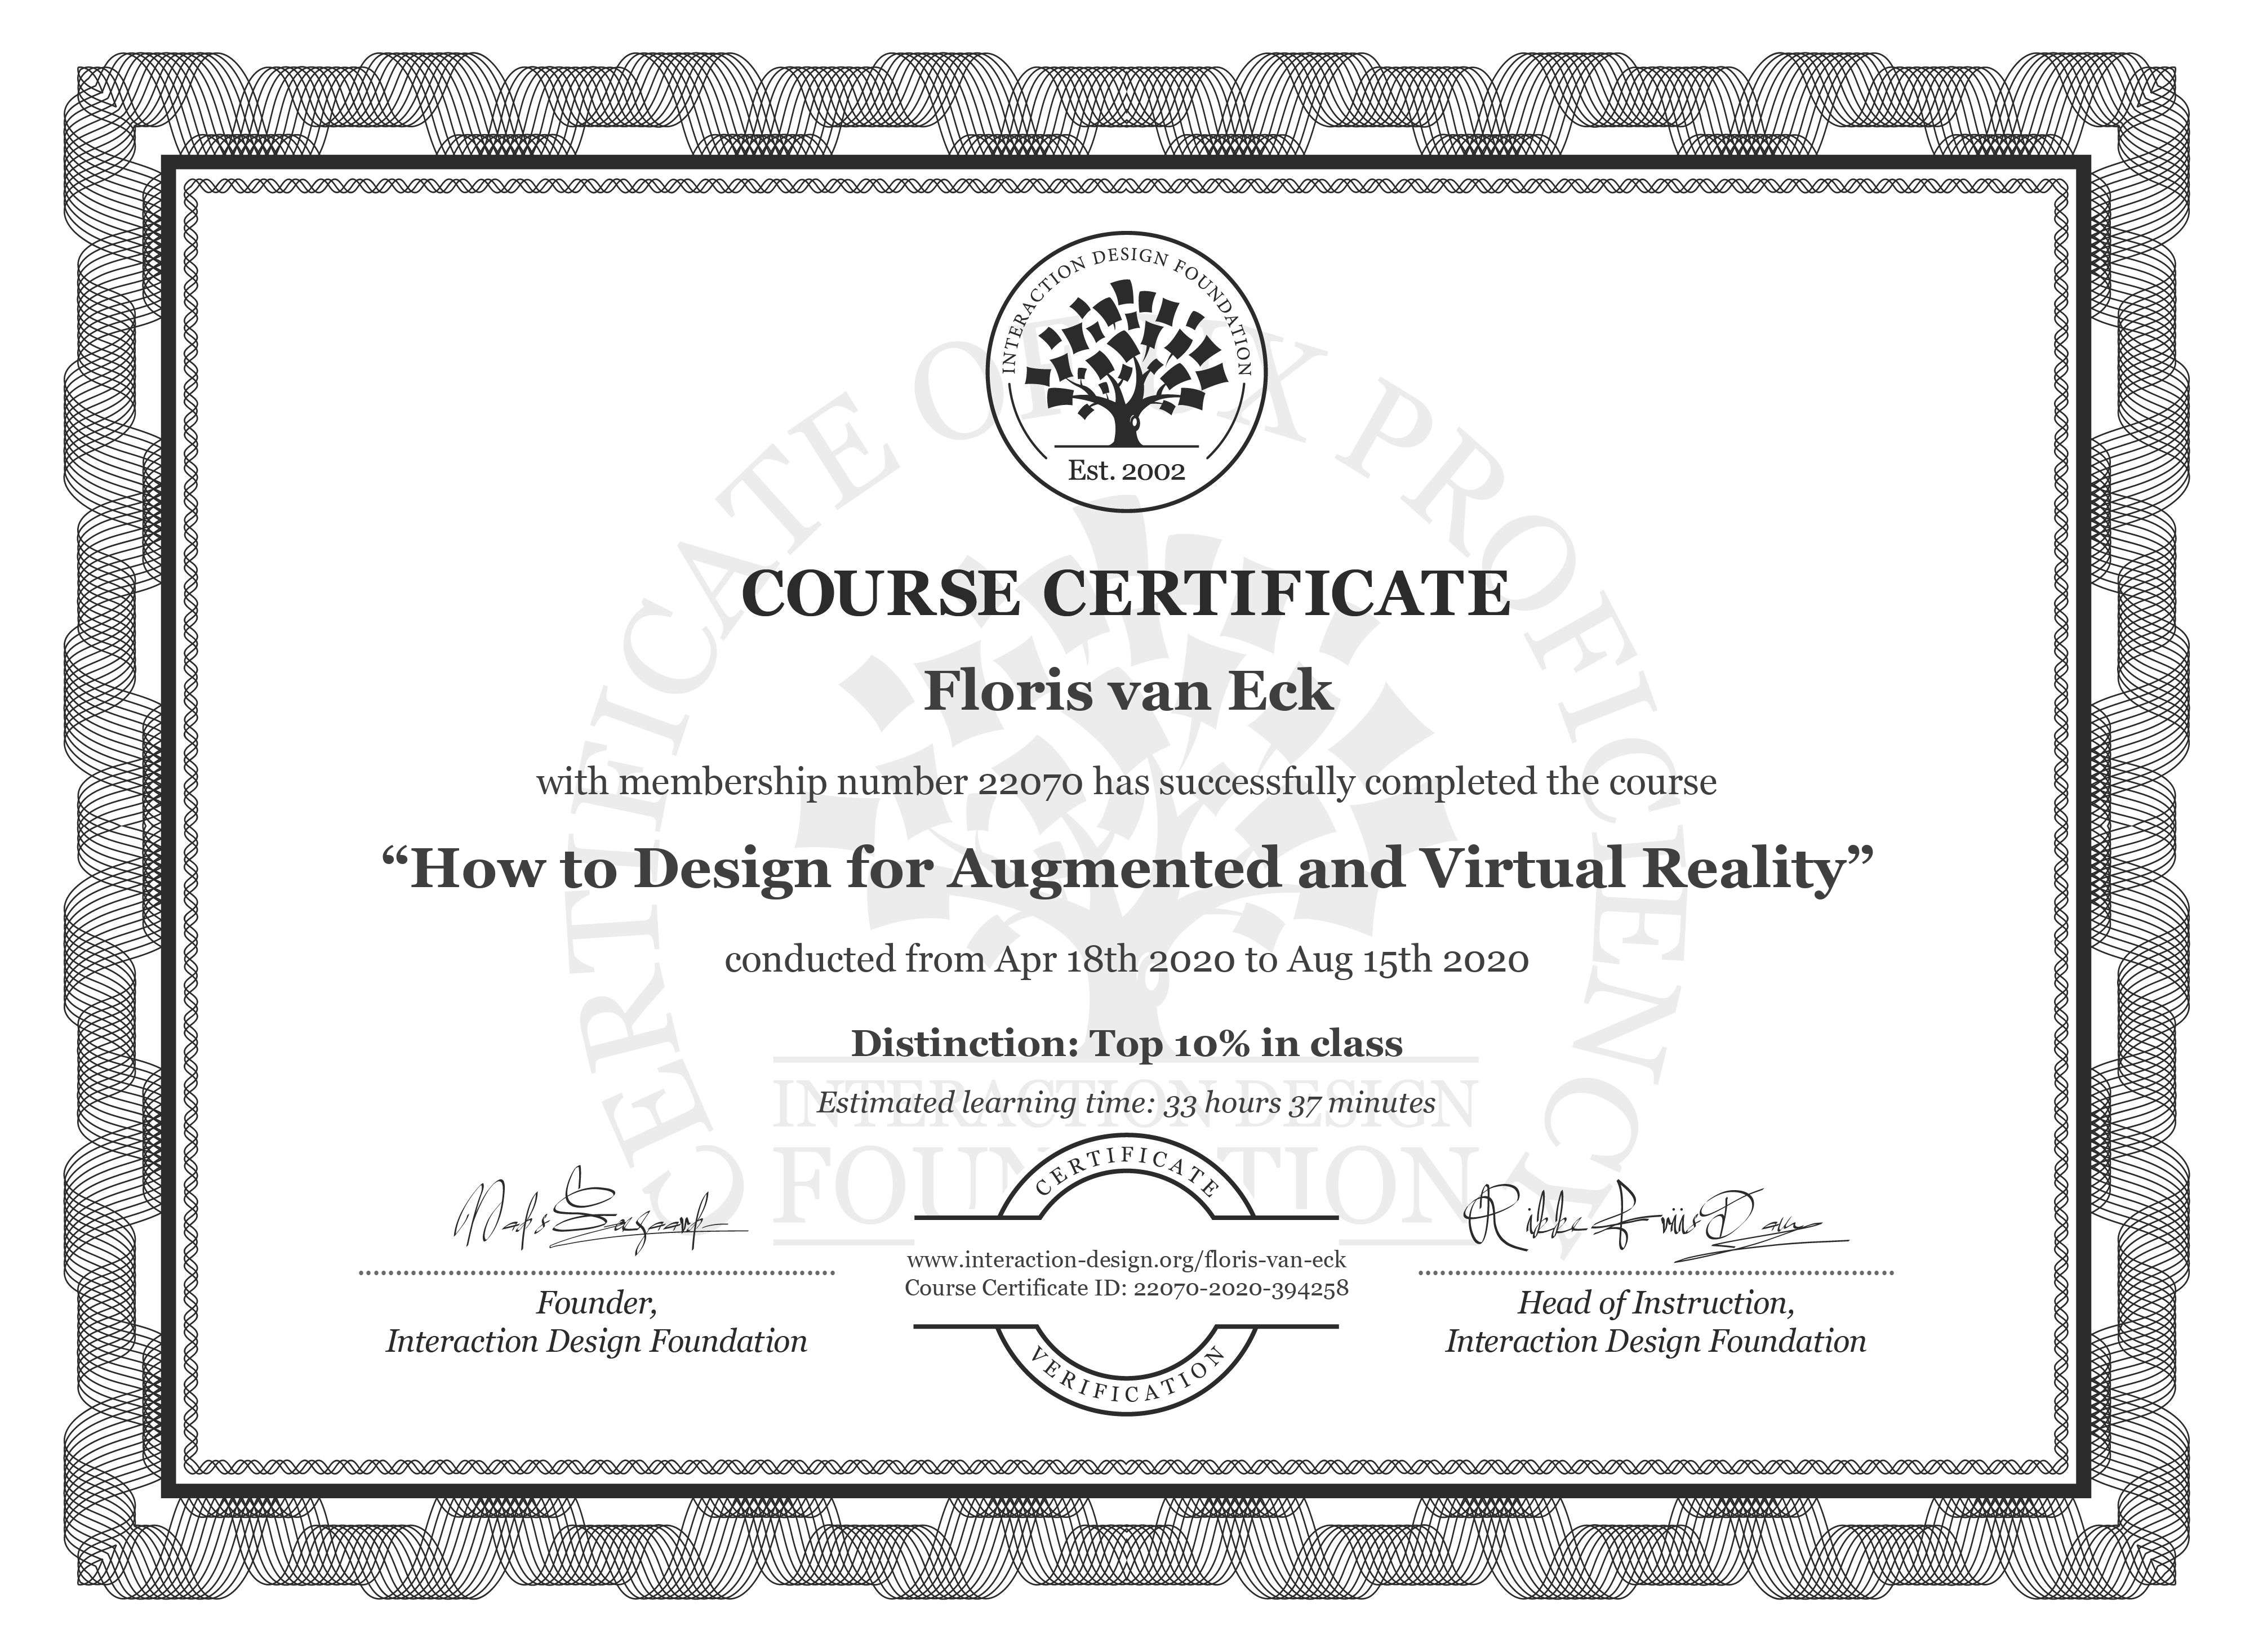 Floris van Eck's Course Certificate: How to Design for Augmented and Virtual Reality